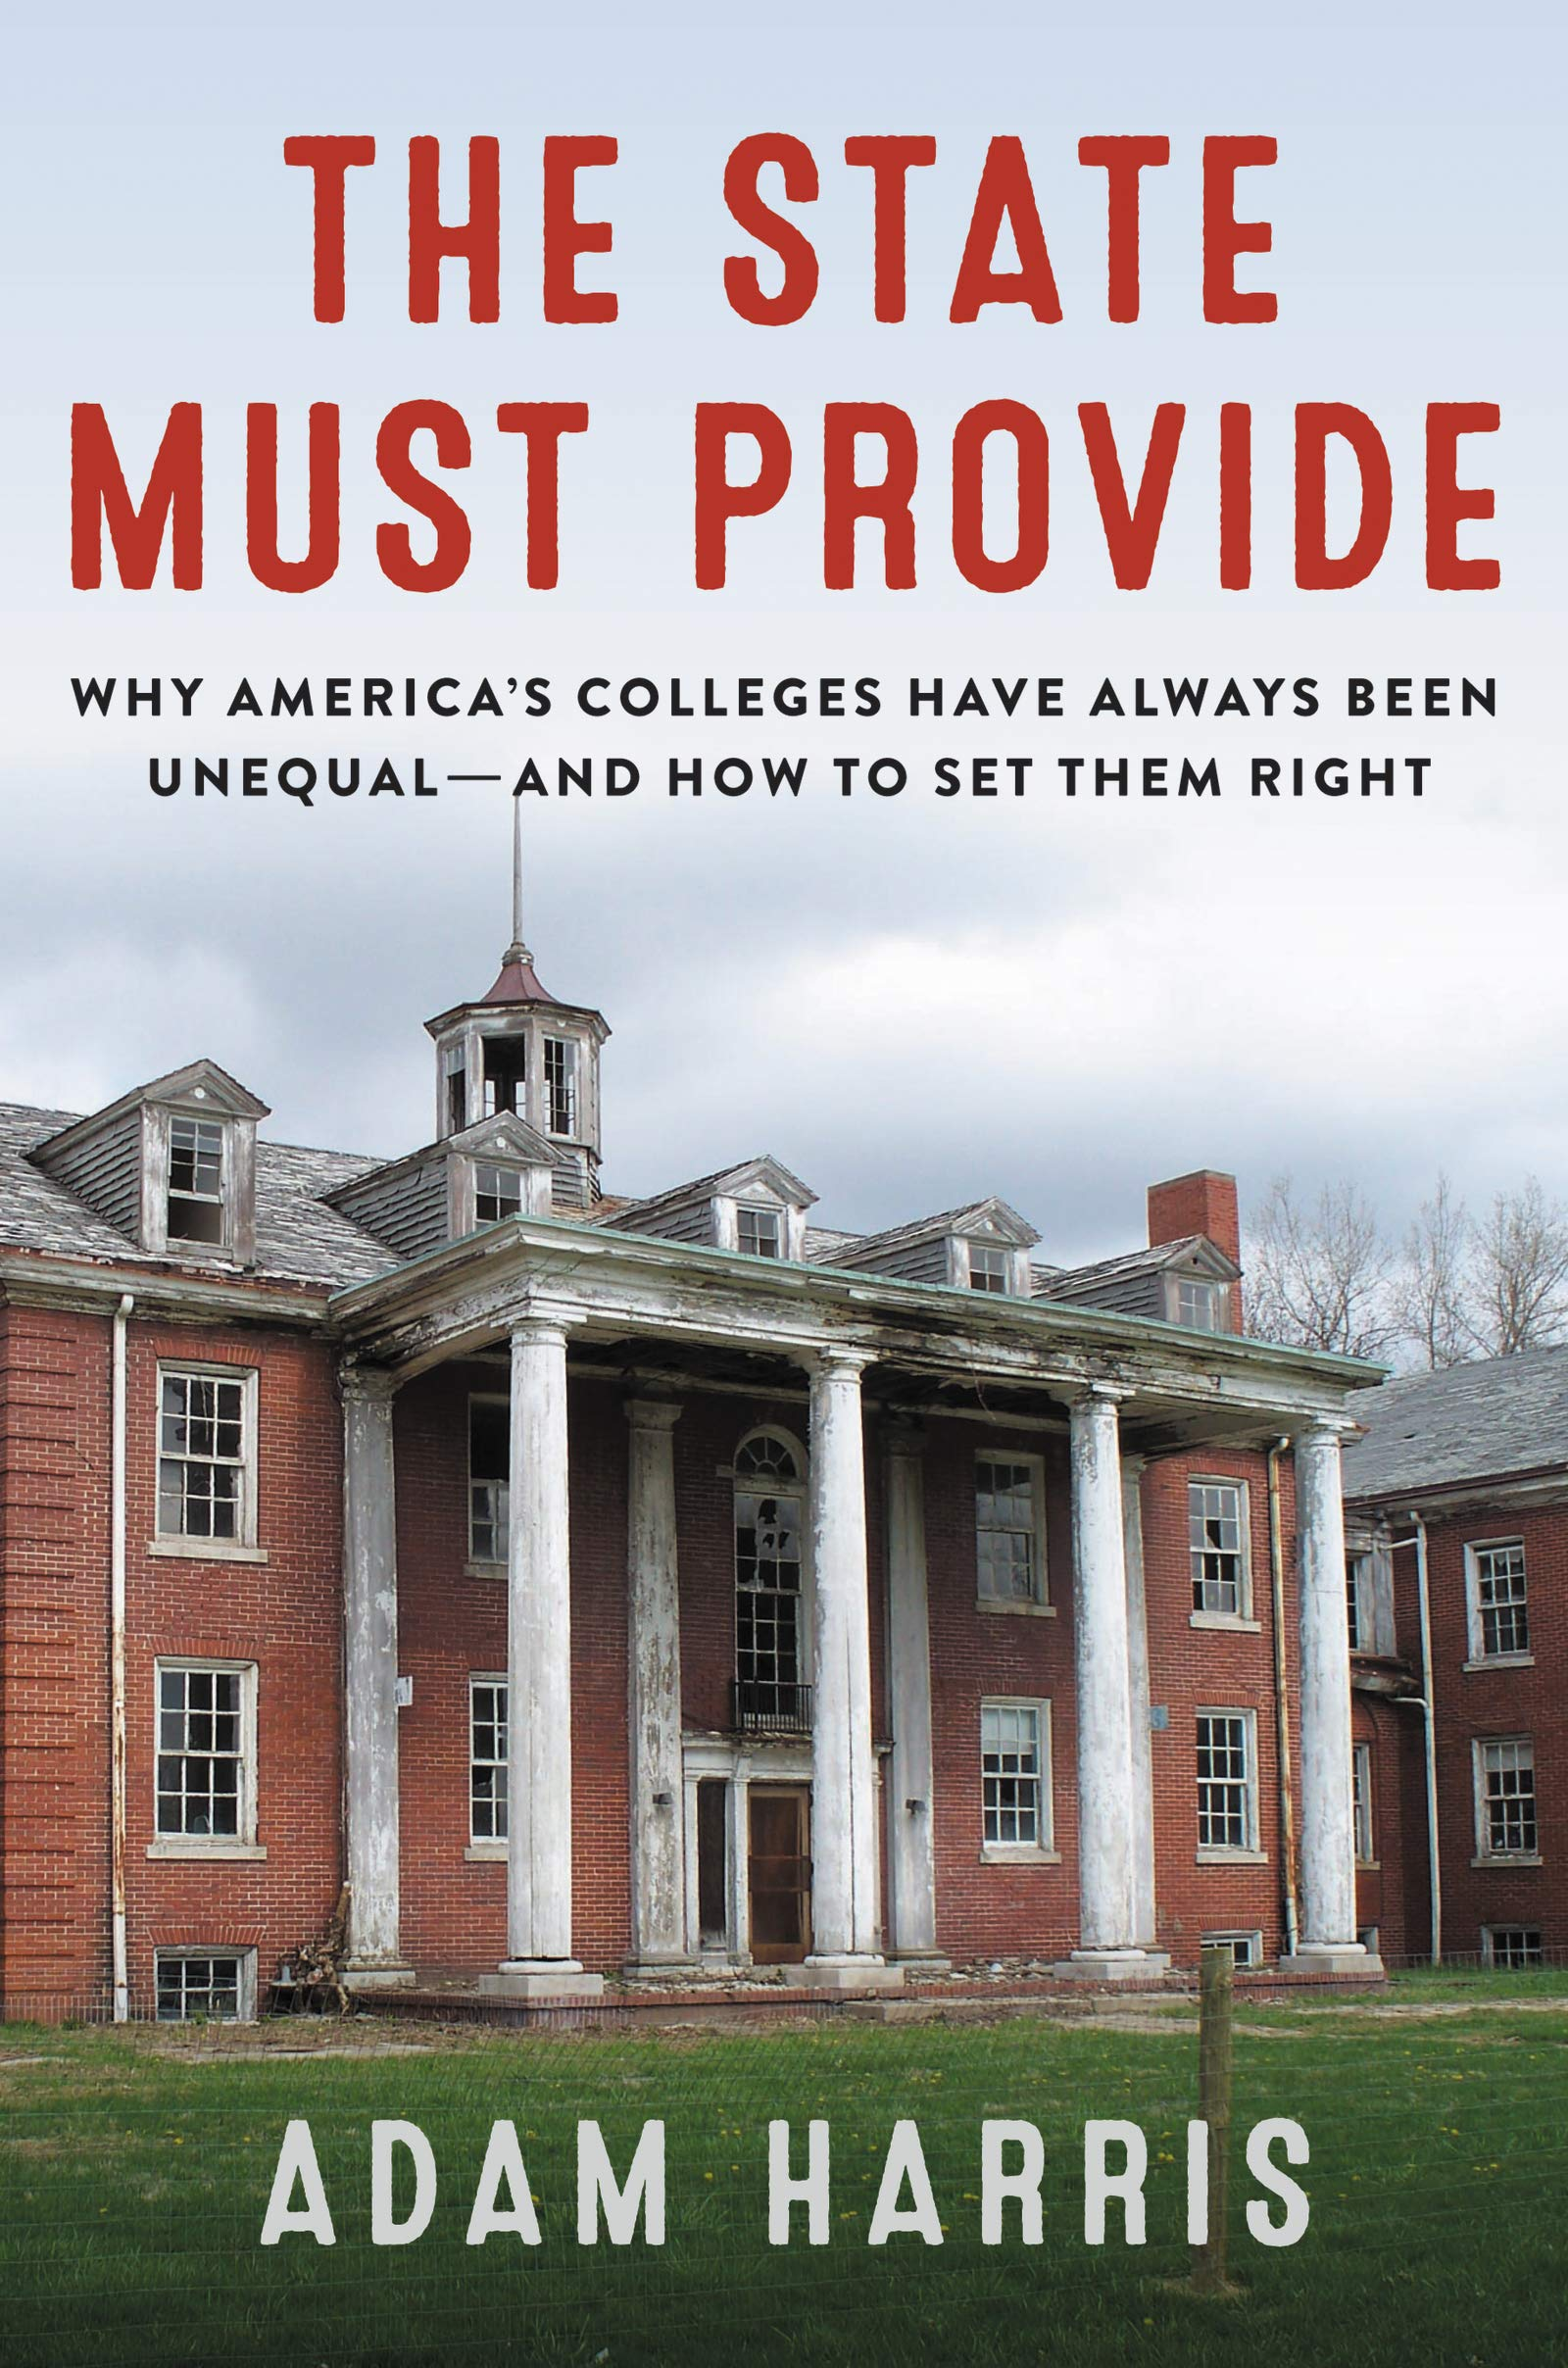 Adam Harris, The State Must Provide: Why America's Colleges Have Always Been Unequal—and How to Set Them Right